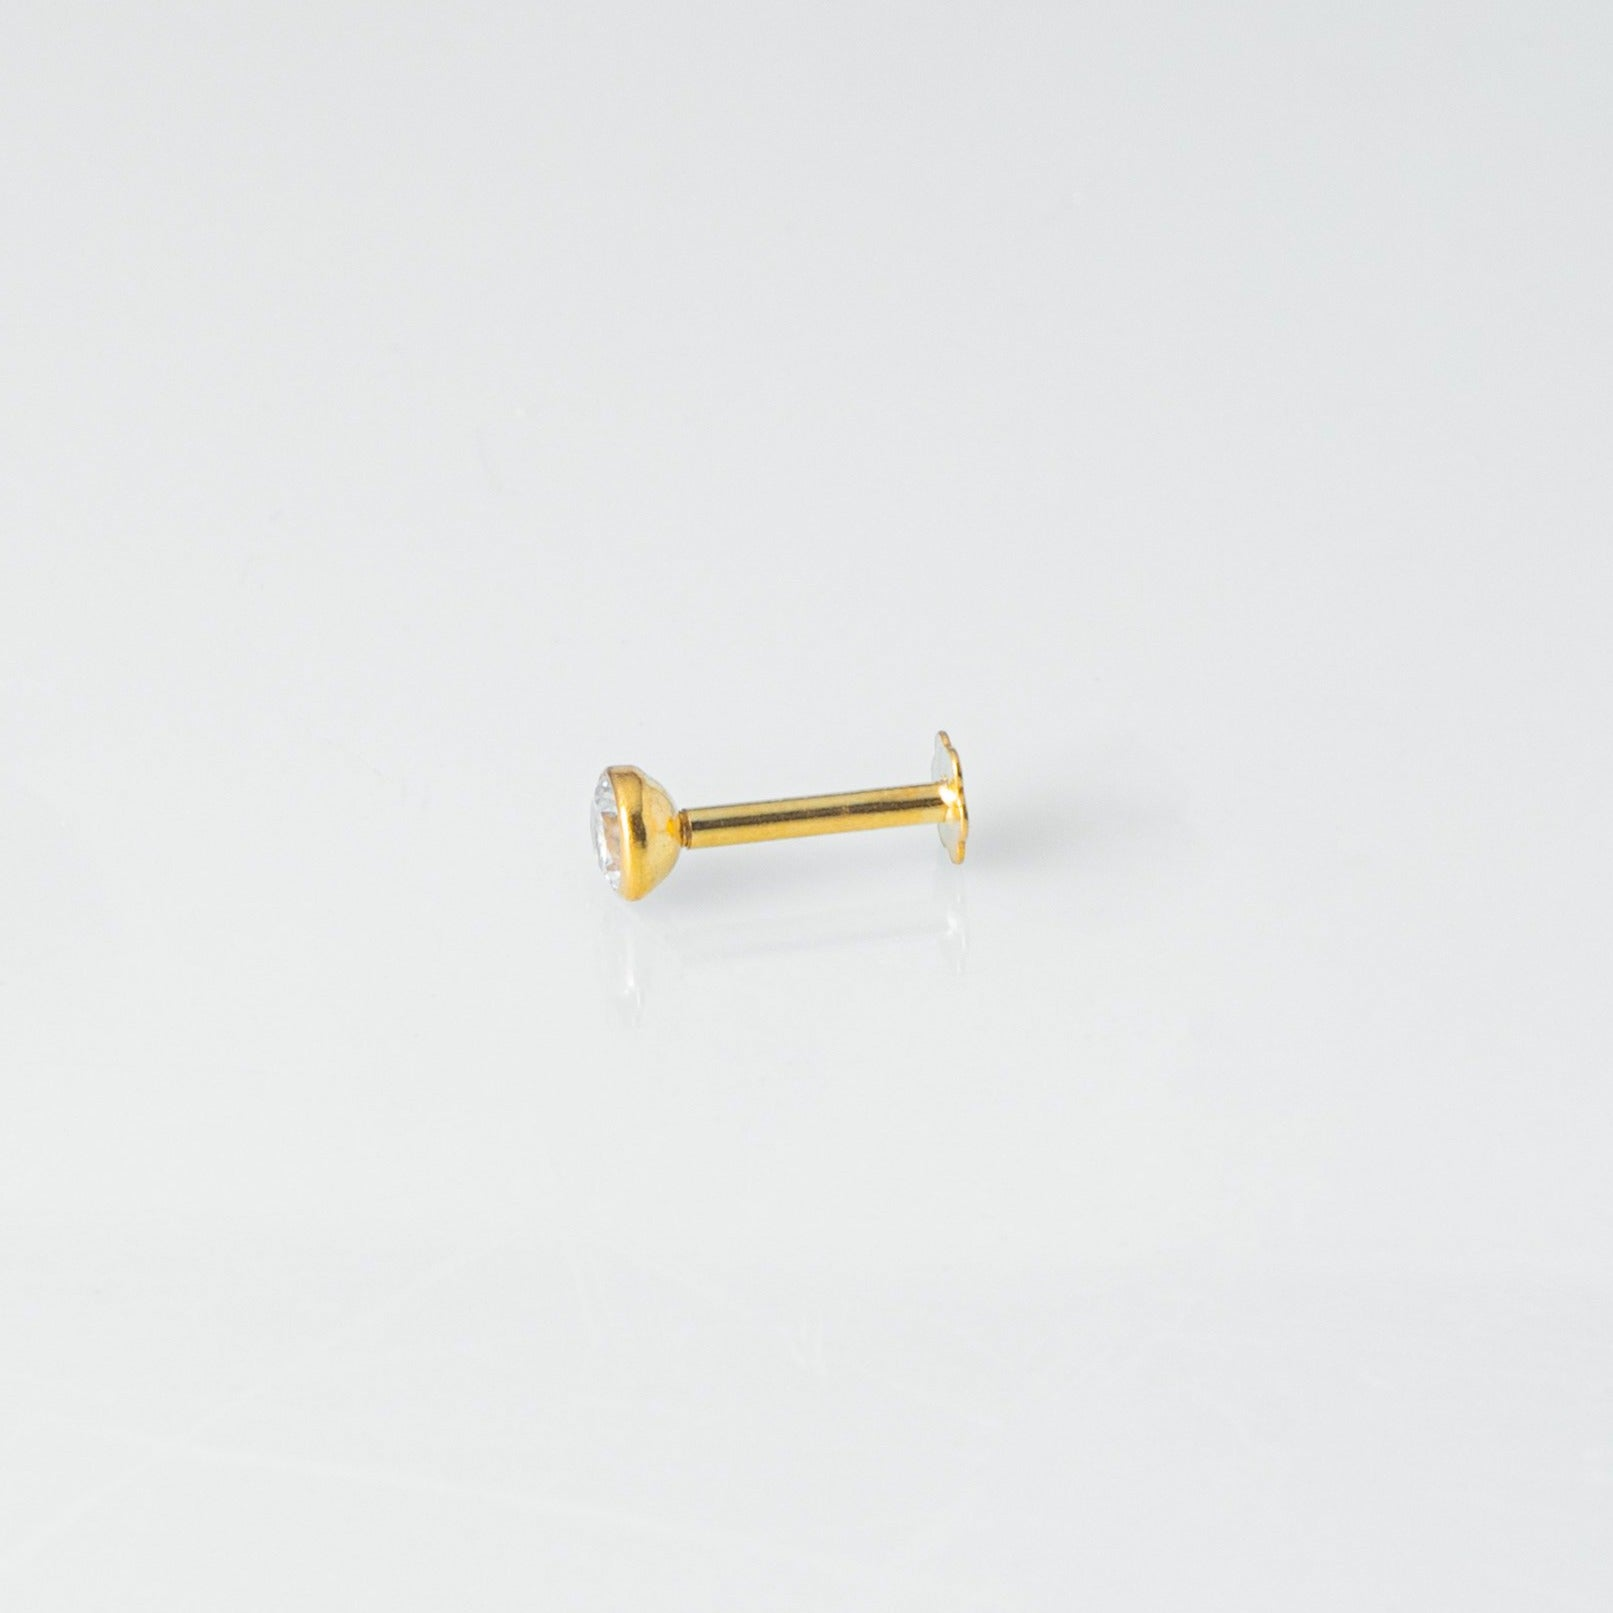 18ct Yellow Gold Screw Back Nose Stud set with Cubic Zirconia in a Rub Over (Bezel) Setting (2.25mm - 3.25mm)